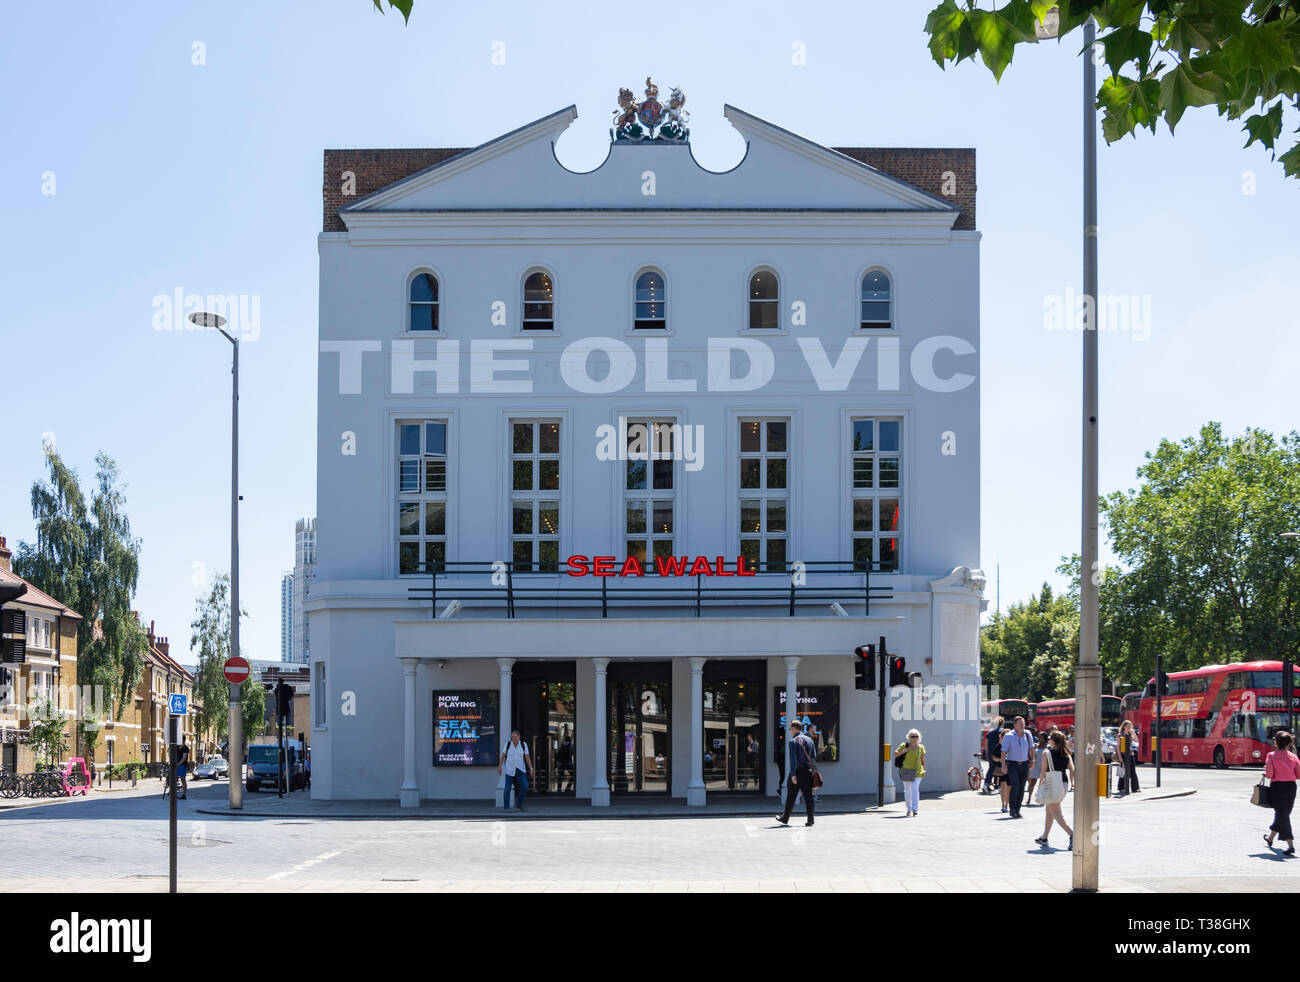 The Old Vic Theatre, Waterloo Road, The London Borough of Lambeth, Greater London, England, United Kingdom - Stock Image